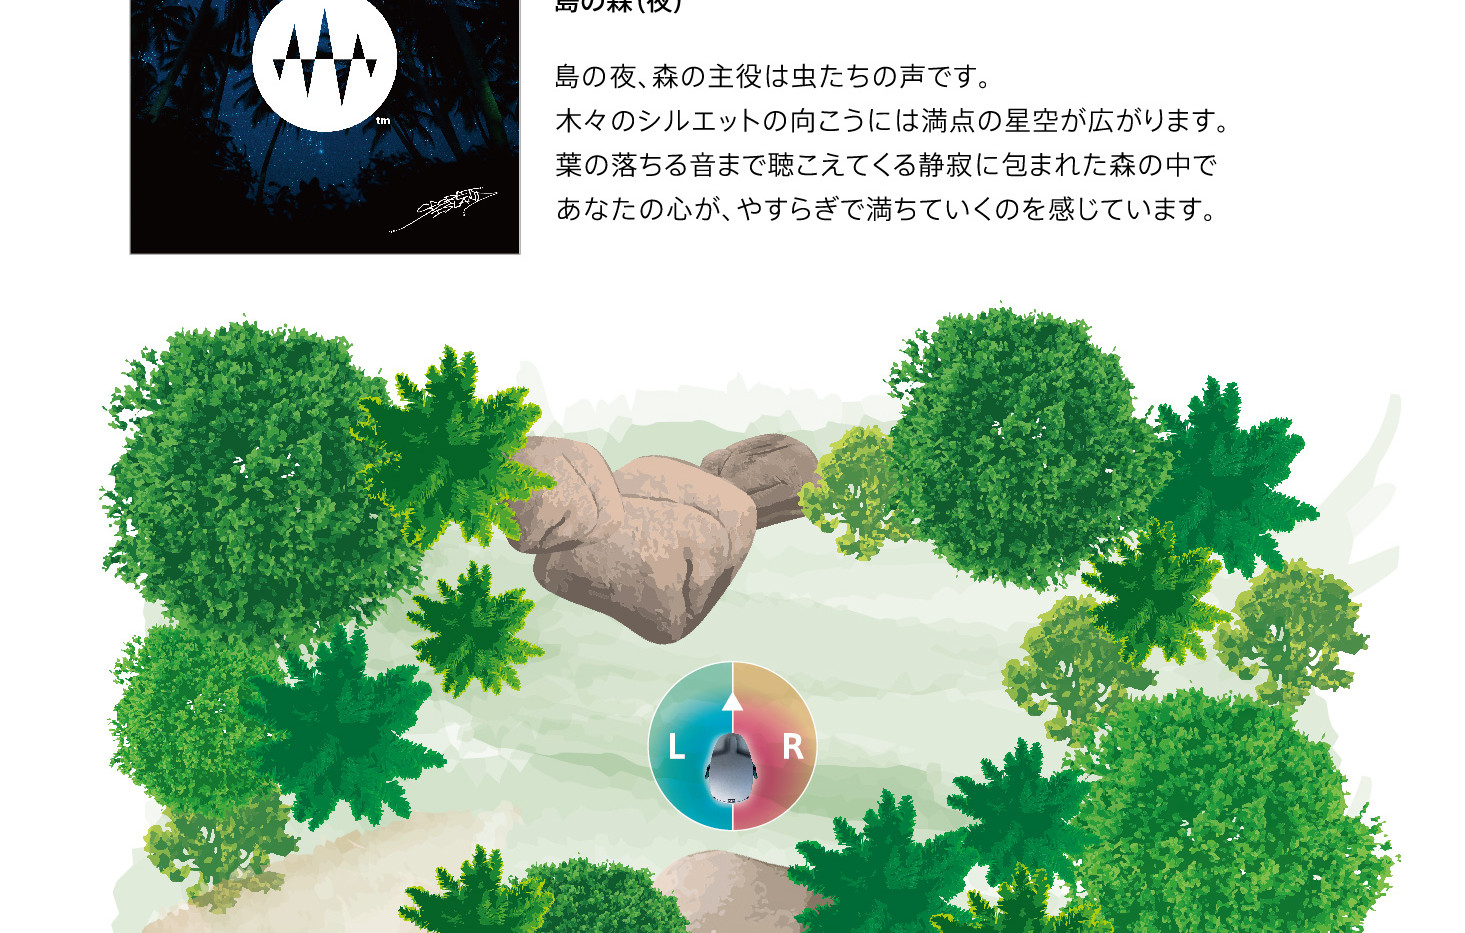 Sunset Side 04.Island Forest (Night) 島の森